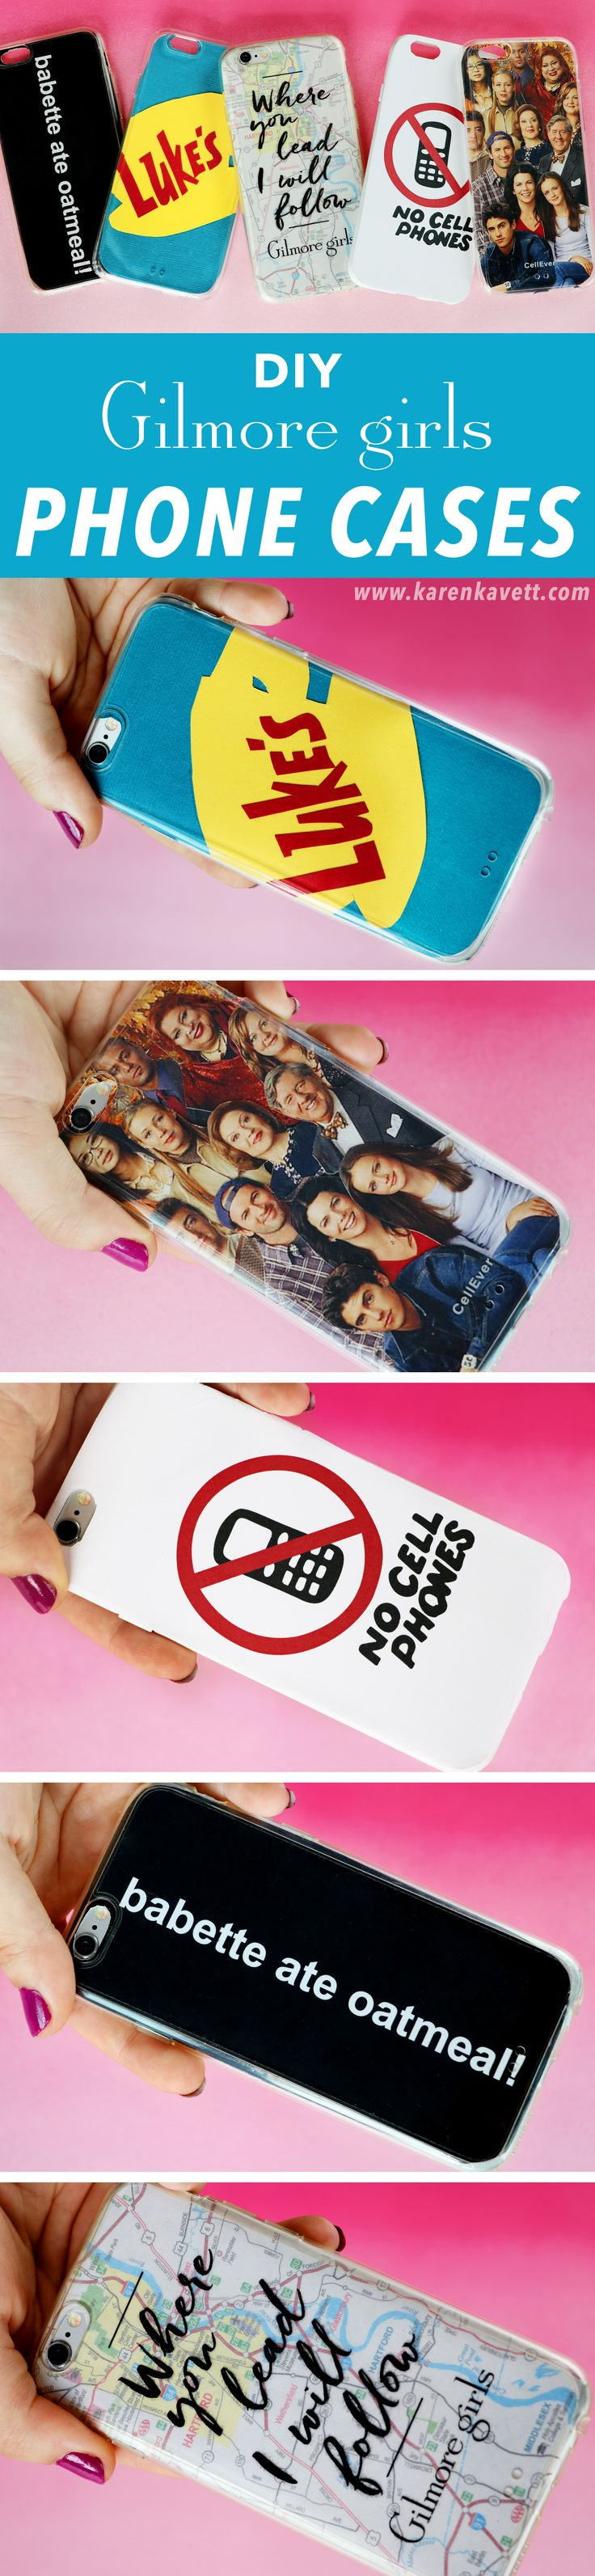 5 DIY Gilmore Girls Phone Cases & Free Printables | @karenkavett